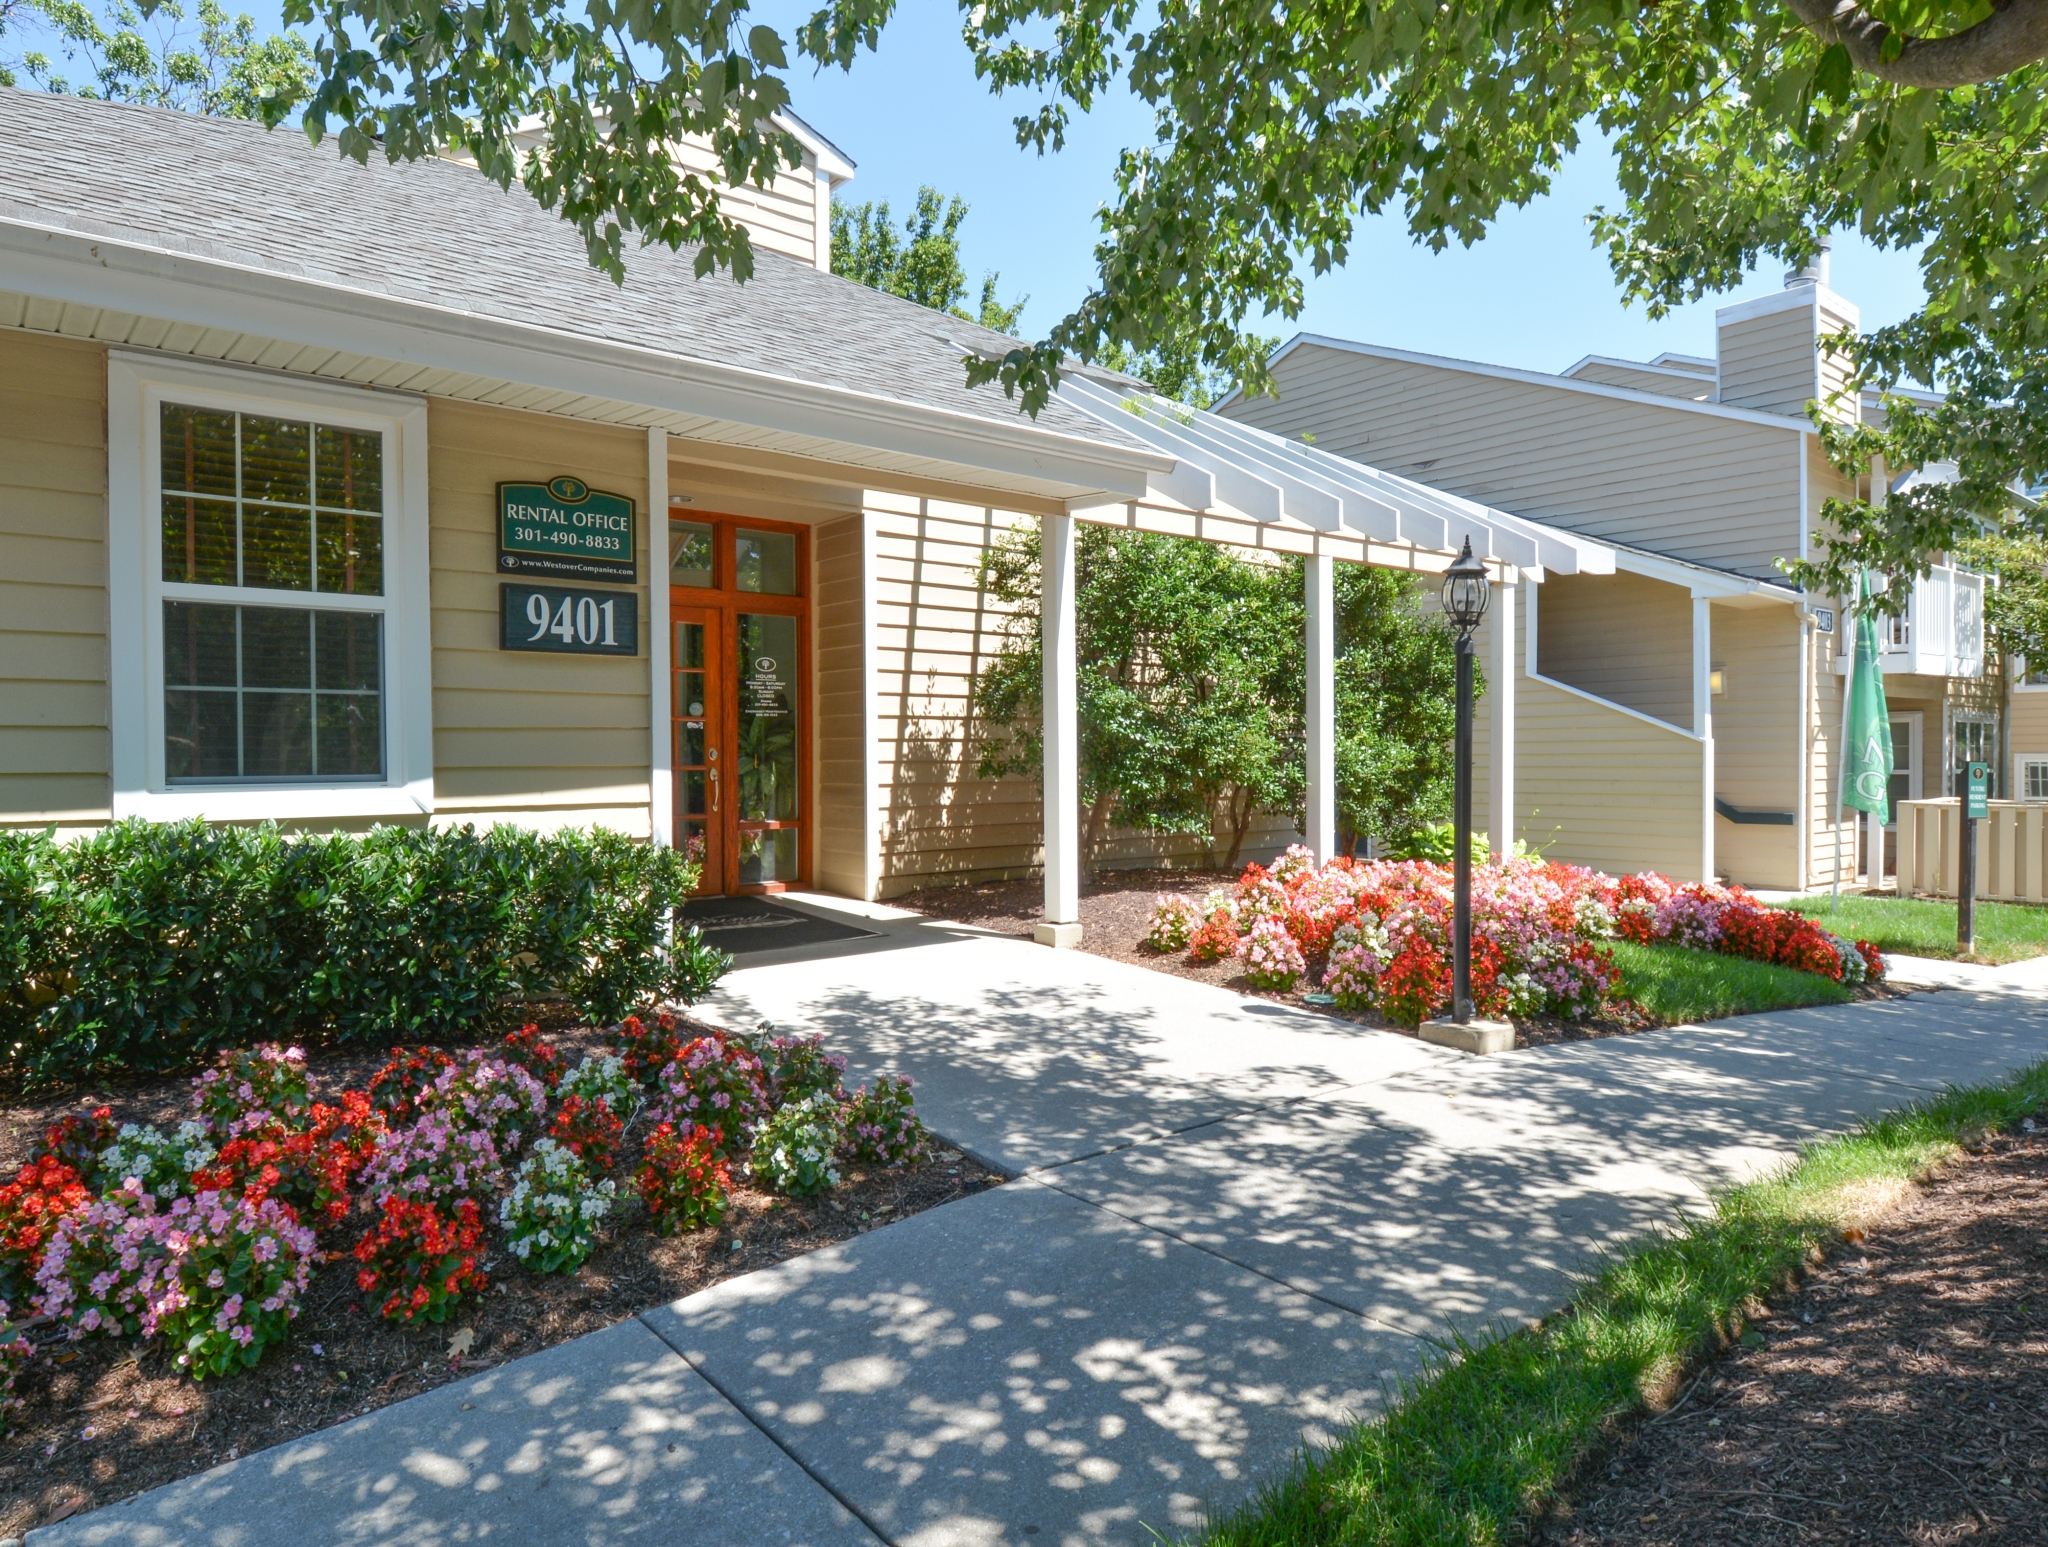 Spring House Apartments Laurel Md Reviews